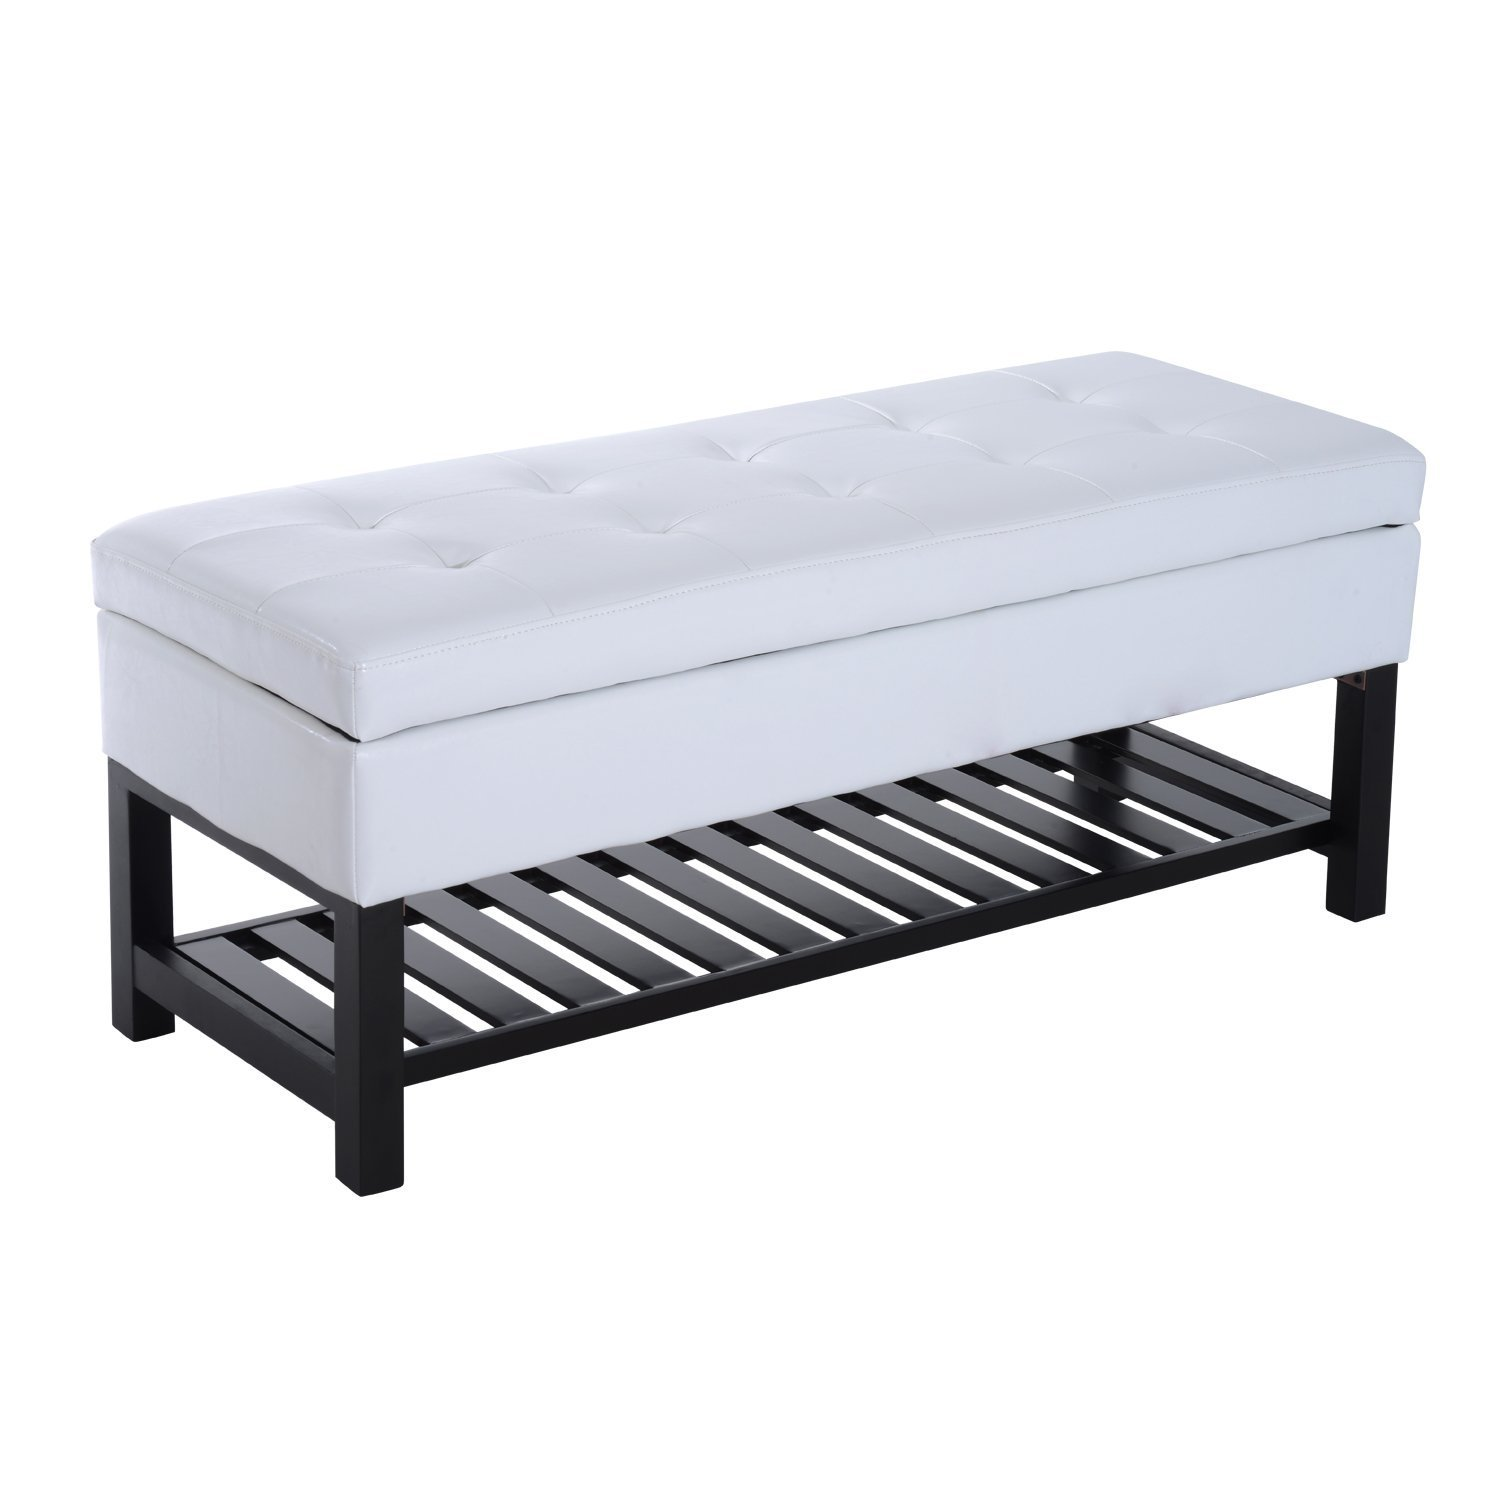 HOMCOM 44'' Tufted Faux Leather Ottoman Storage Bench with Shoe Rack - White by HOMCOM